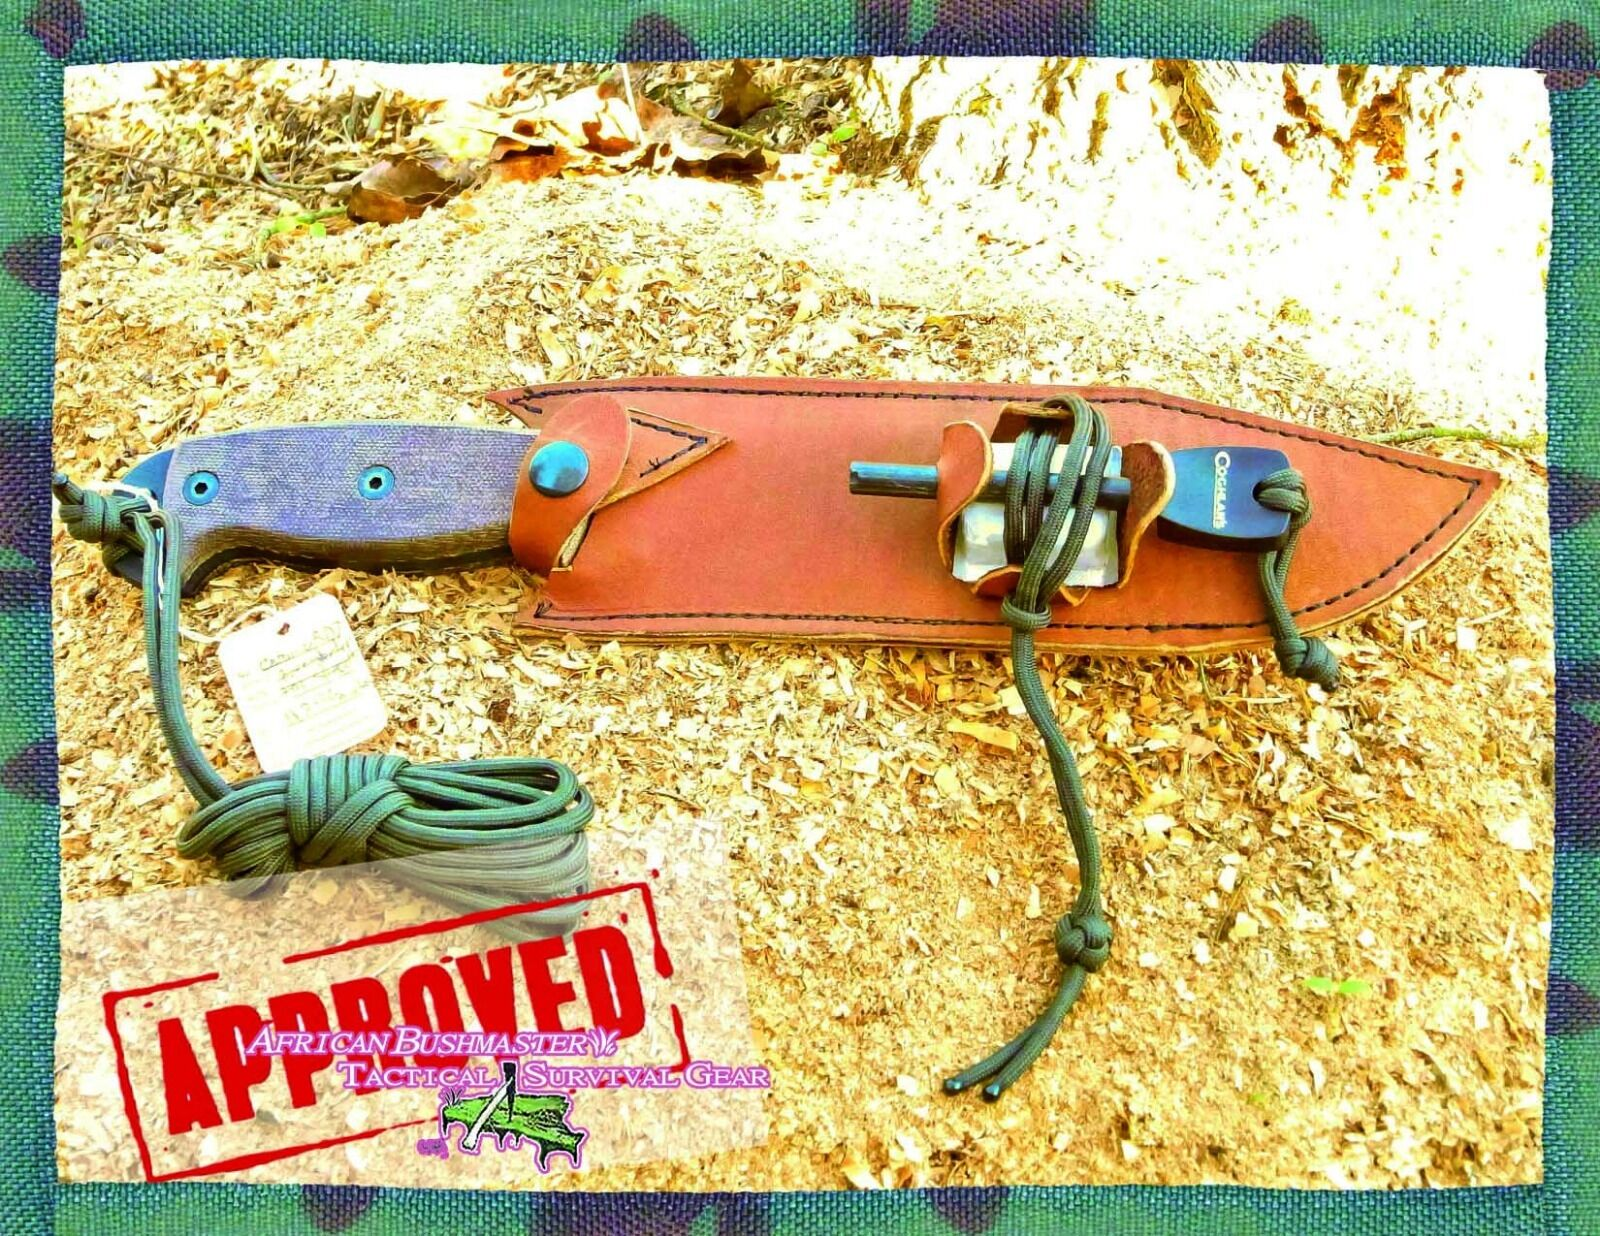 Approved  ABushmaster Ontario RD 7  '(Sheath Only)'